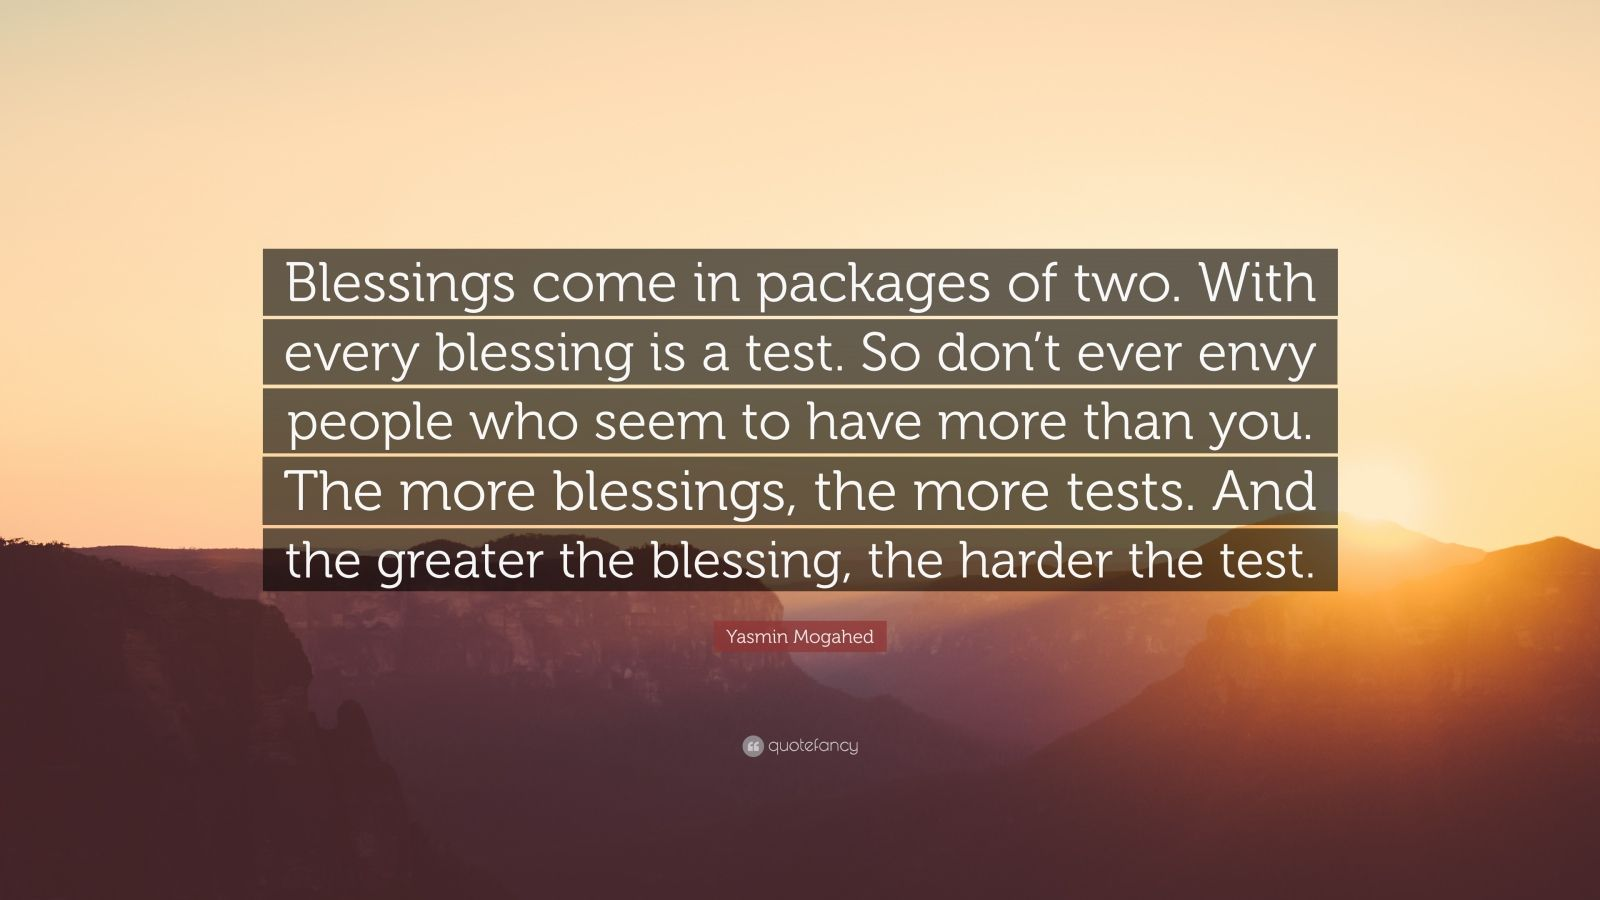 """Yasmin Mogahed Quote: """"Blessings come in packages of two. With every blessing is a test. So don't ever envy people who seem to have more than you. The more blessings, the more tests. And the greater the blessing, the harder the test."""""""